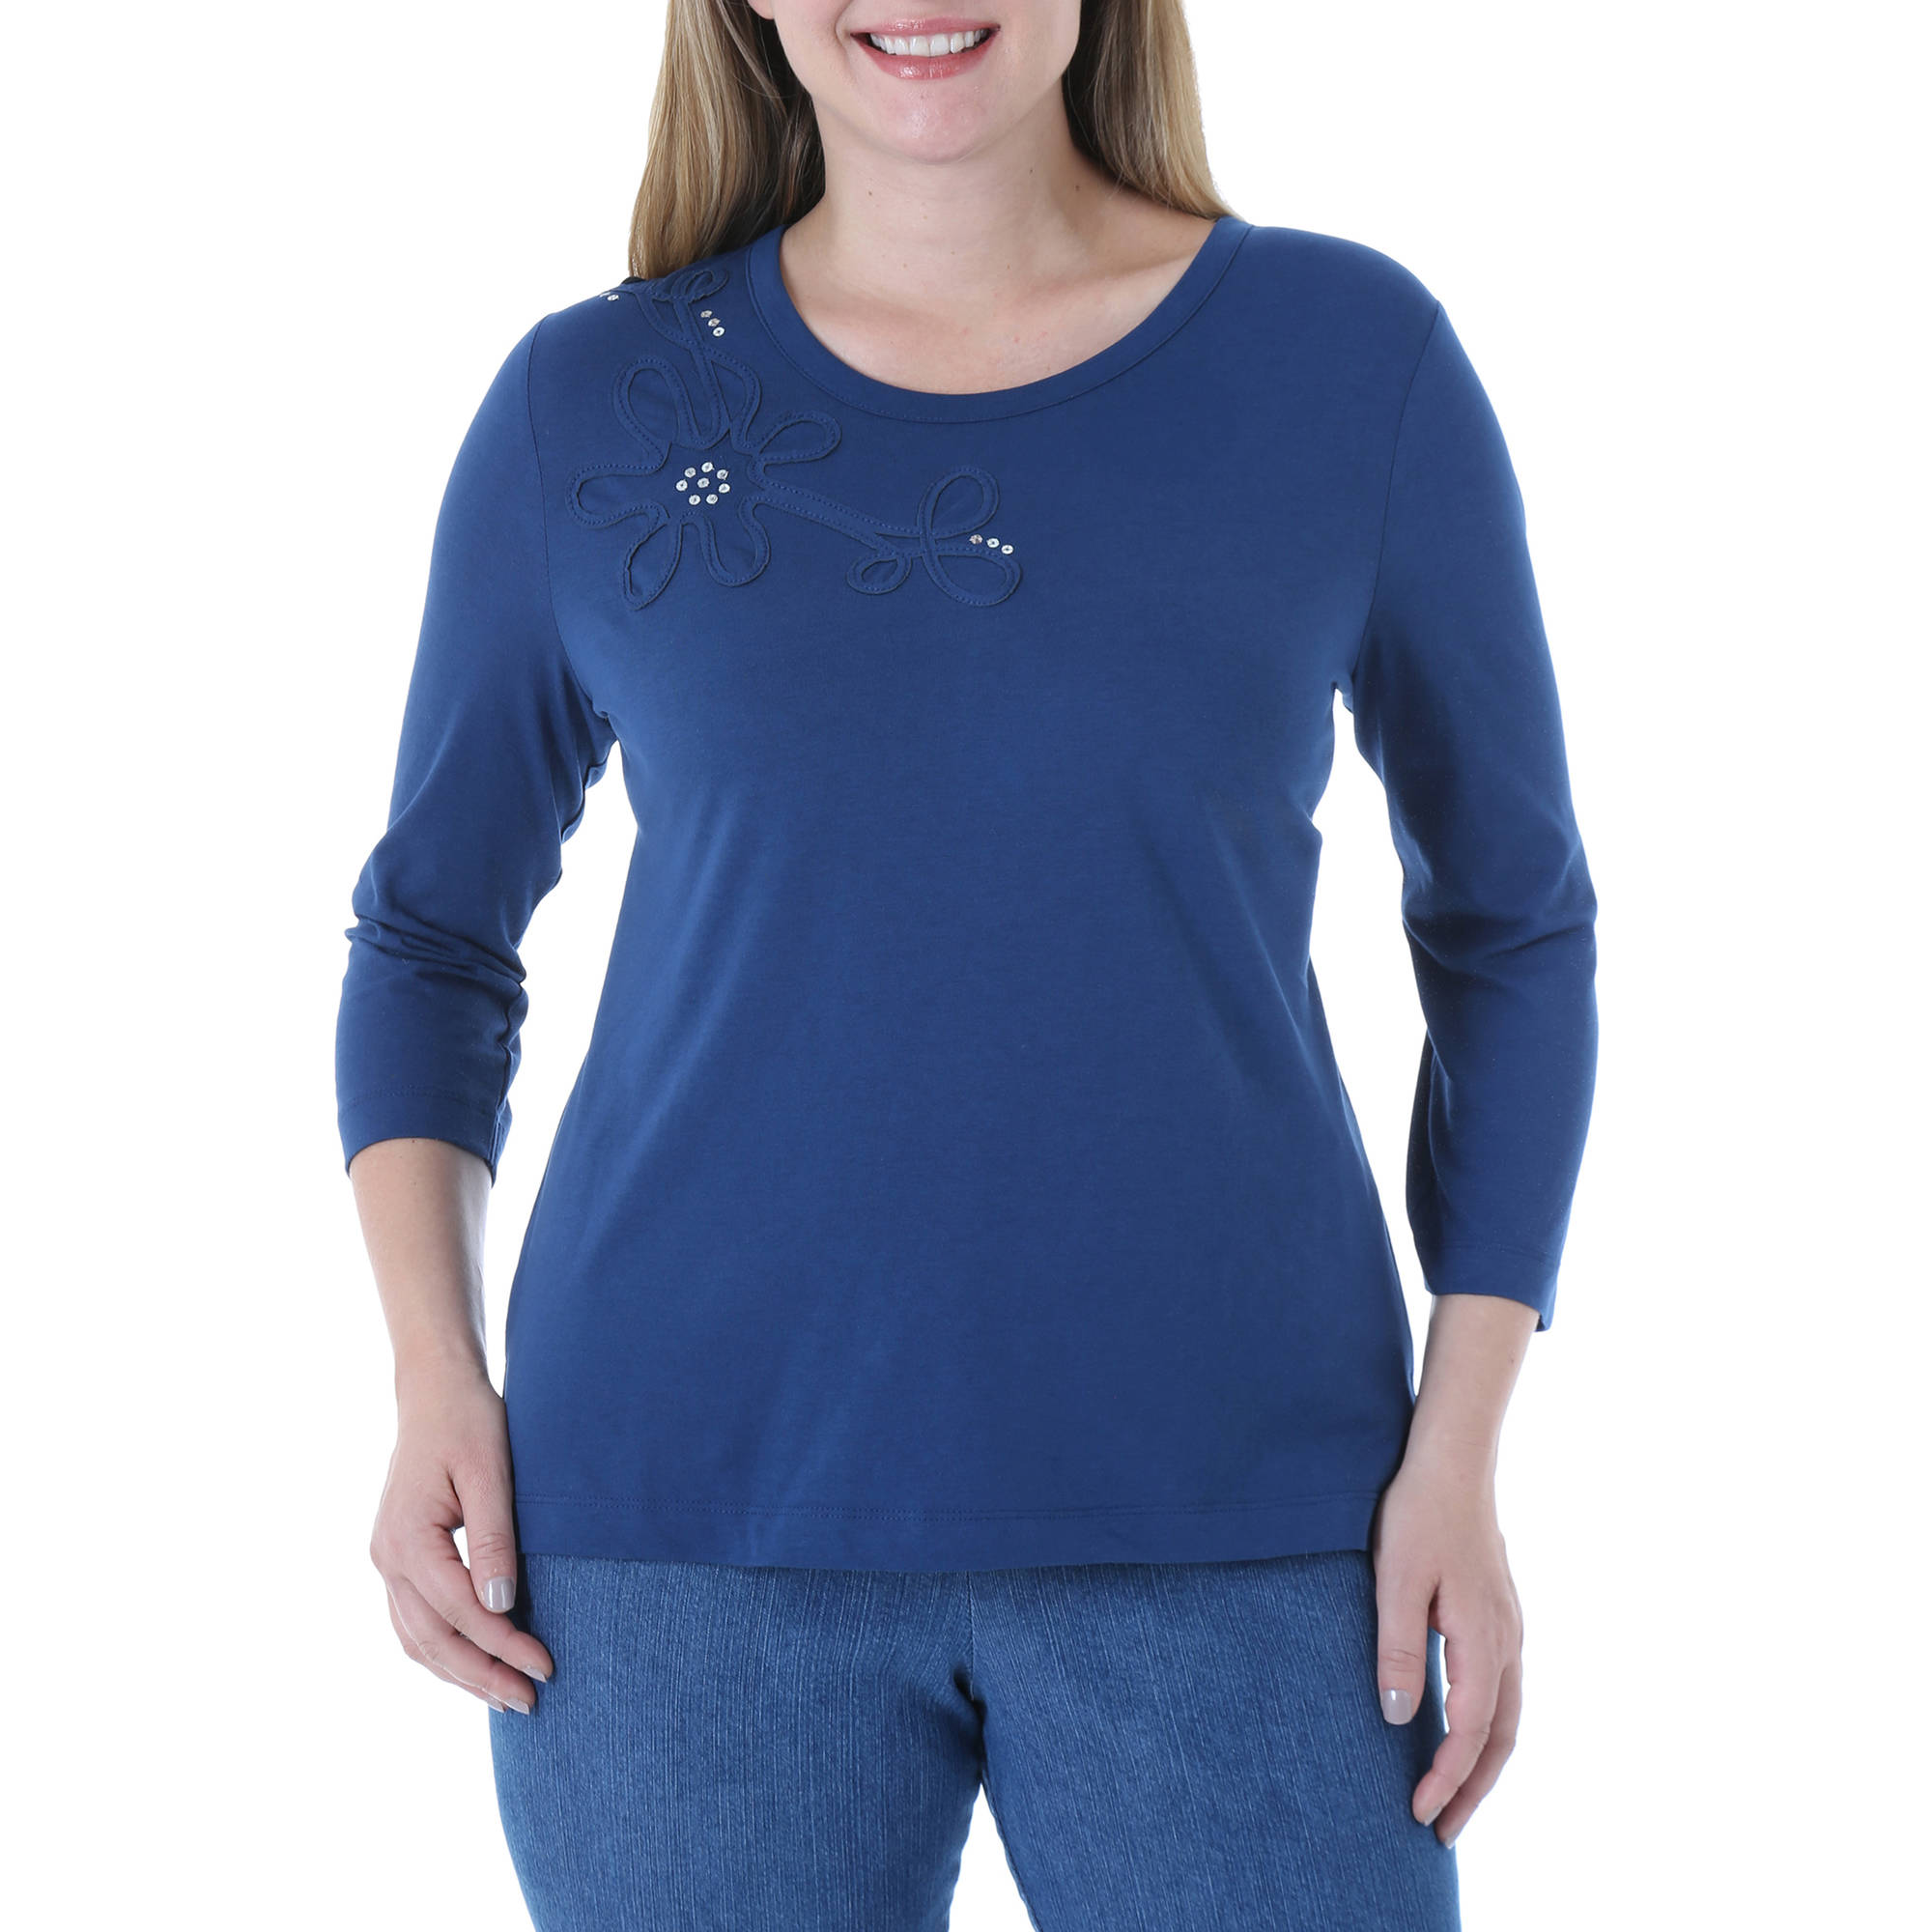 Chic Women's Comfort Collection 3/4 Sleeve Shirt